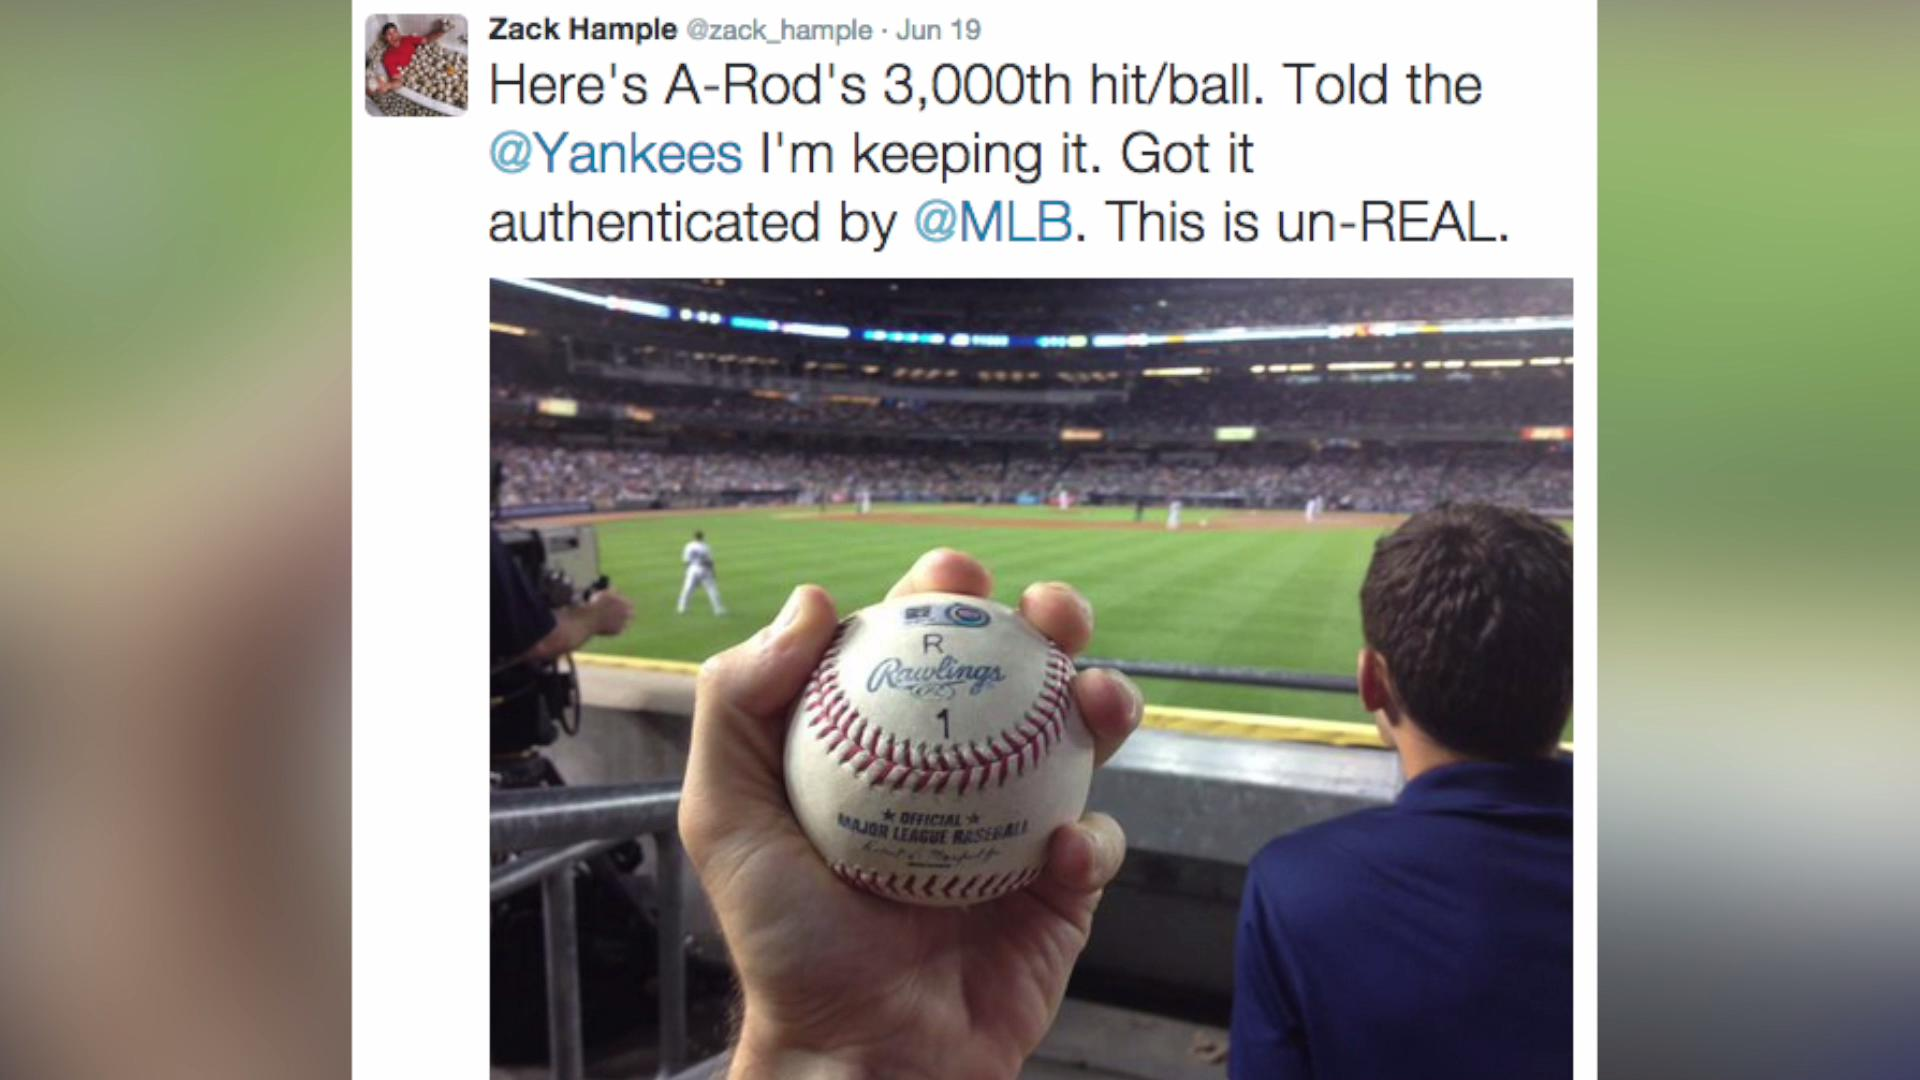 Guy who caught A-Rod's 3000th hit won't give up the ball